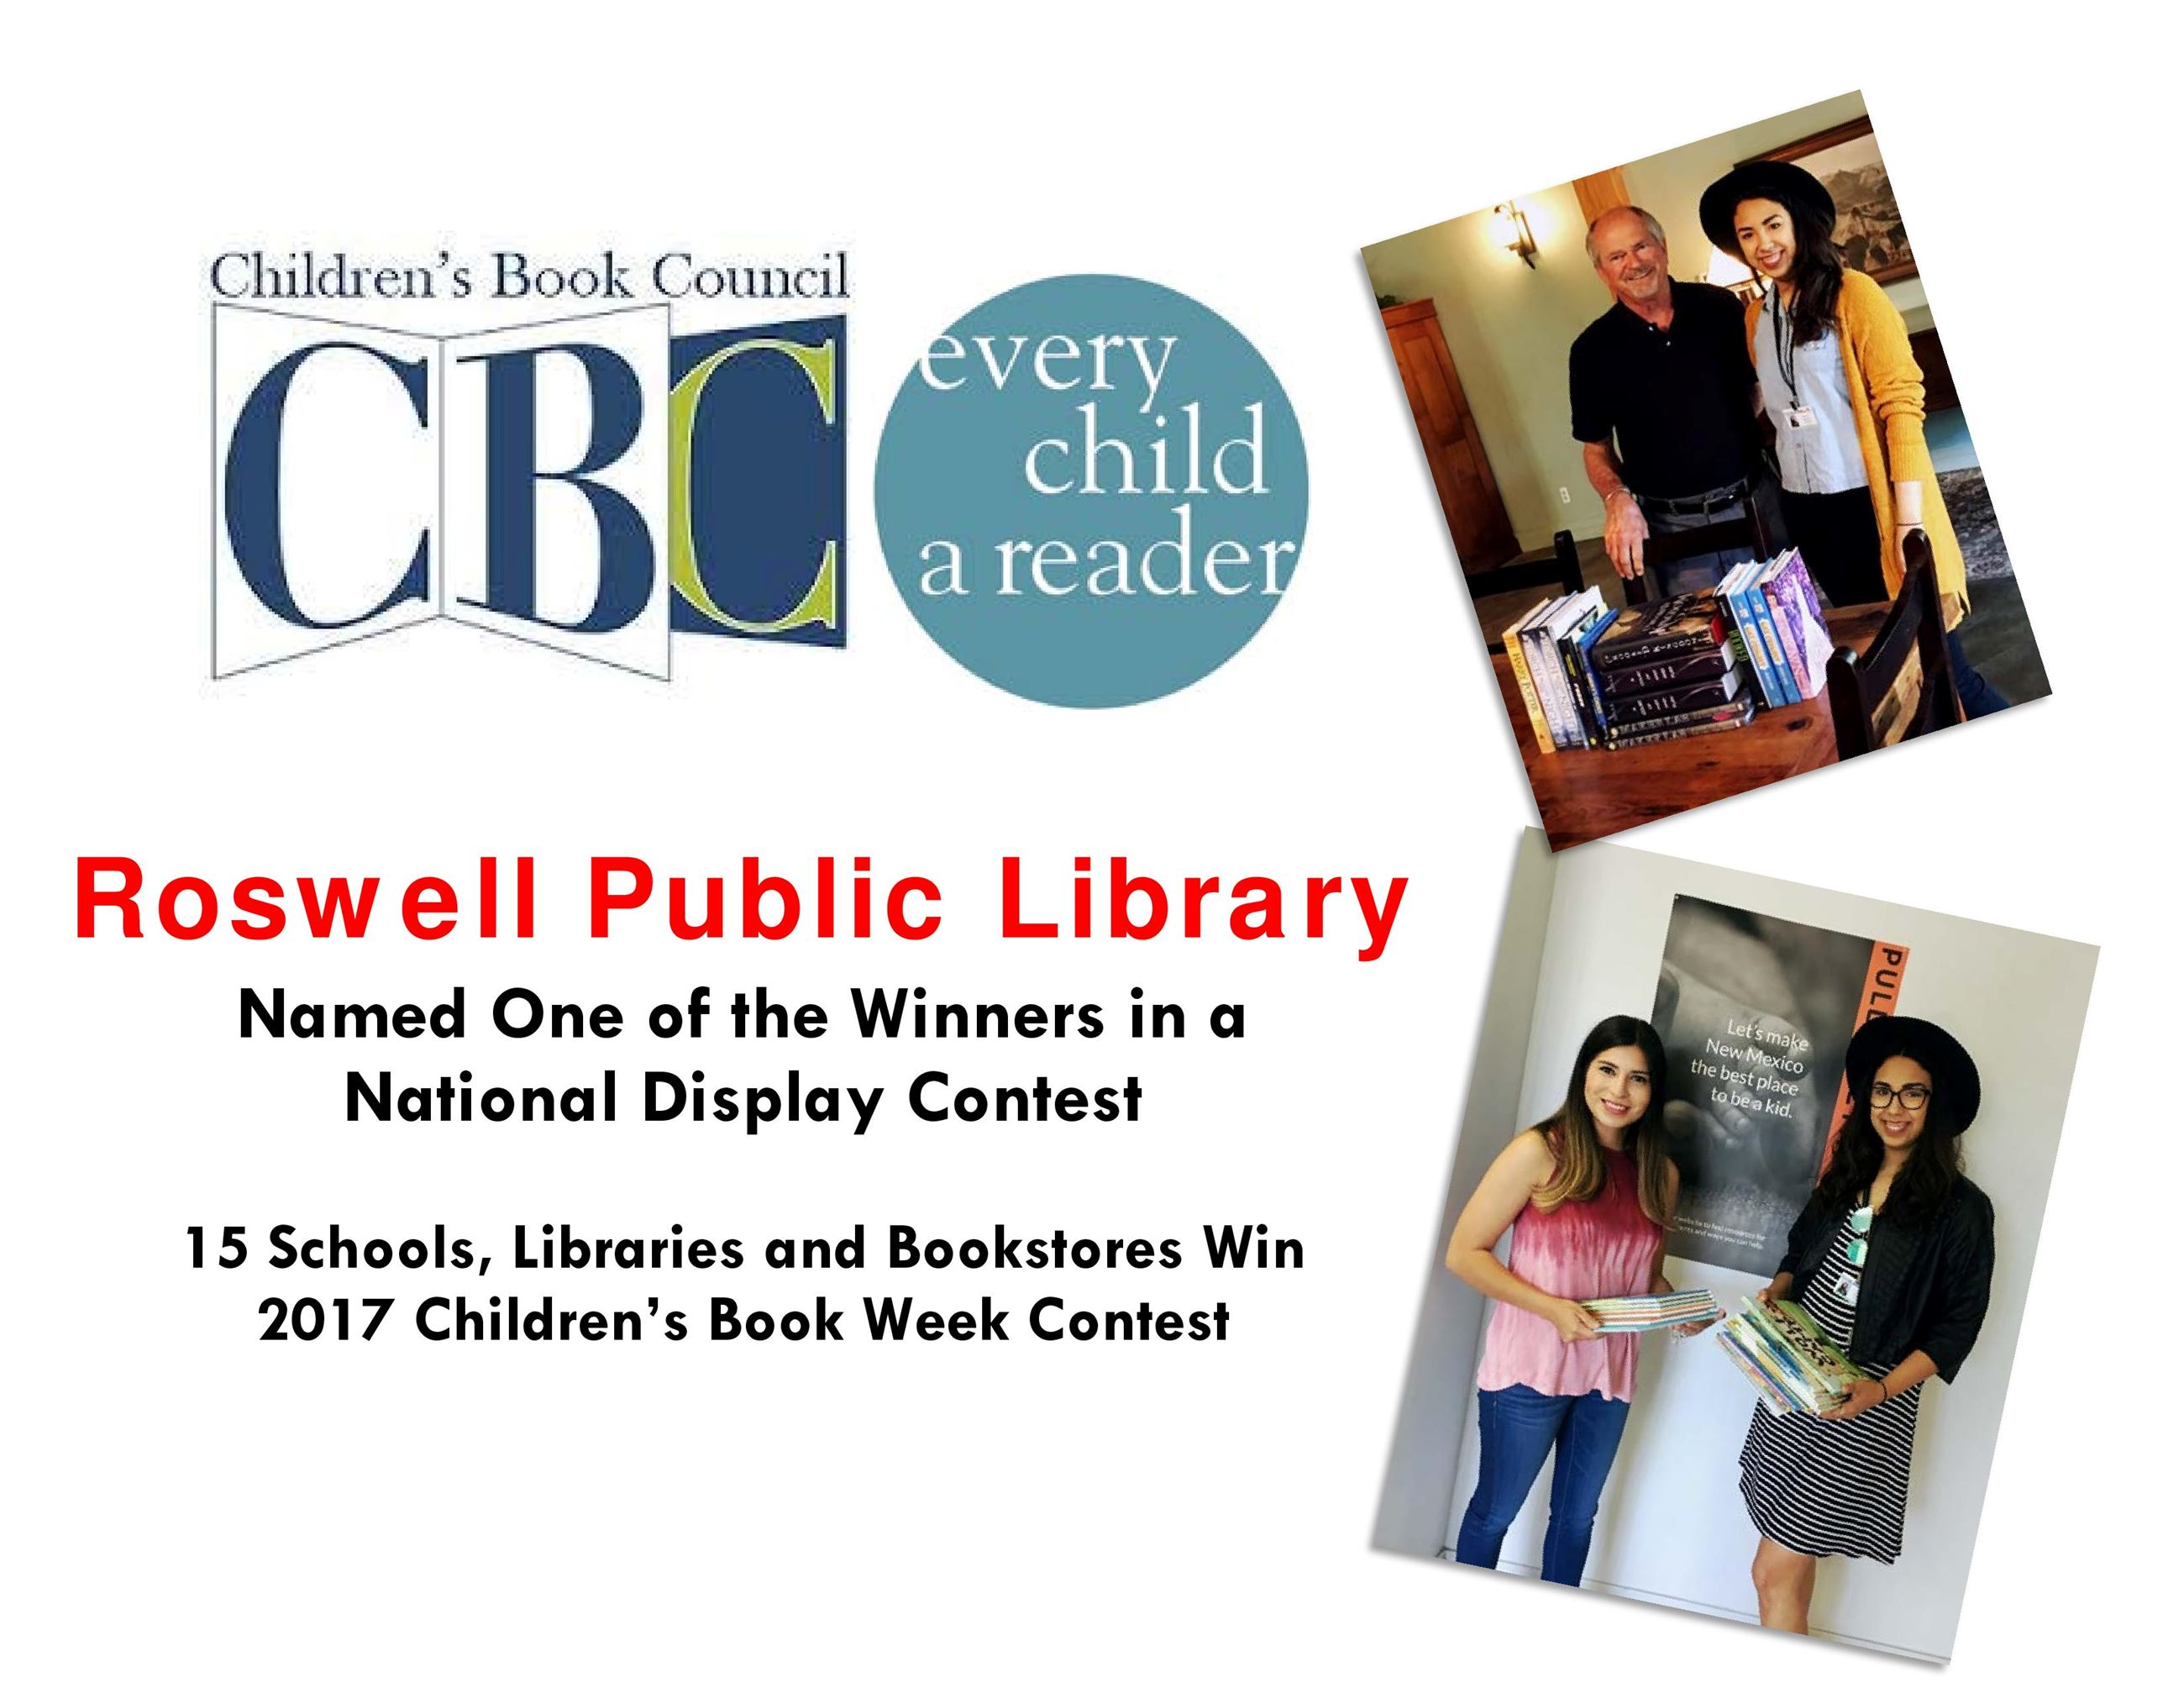 Roswell Public Library Named One of the Winners in a  National Display Contest